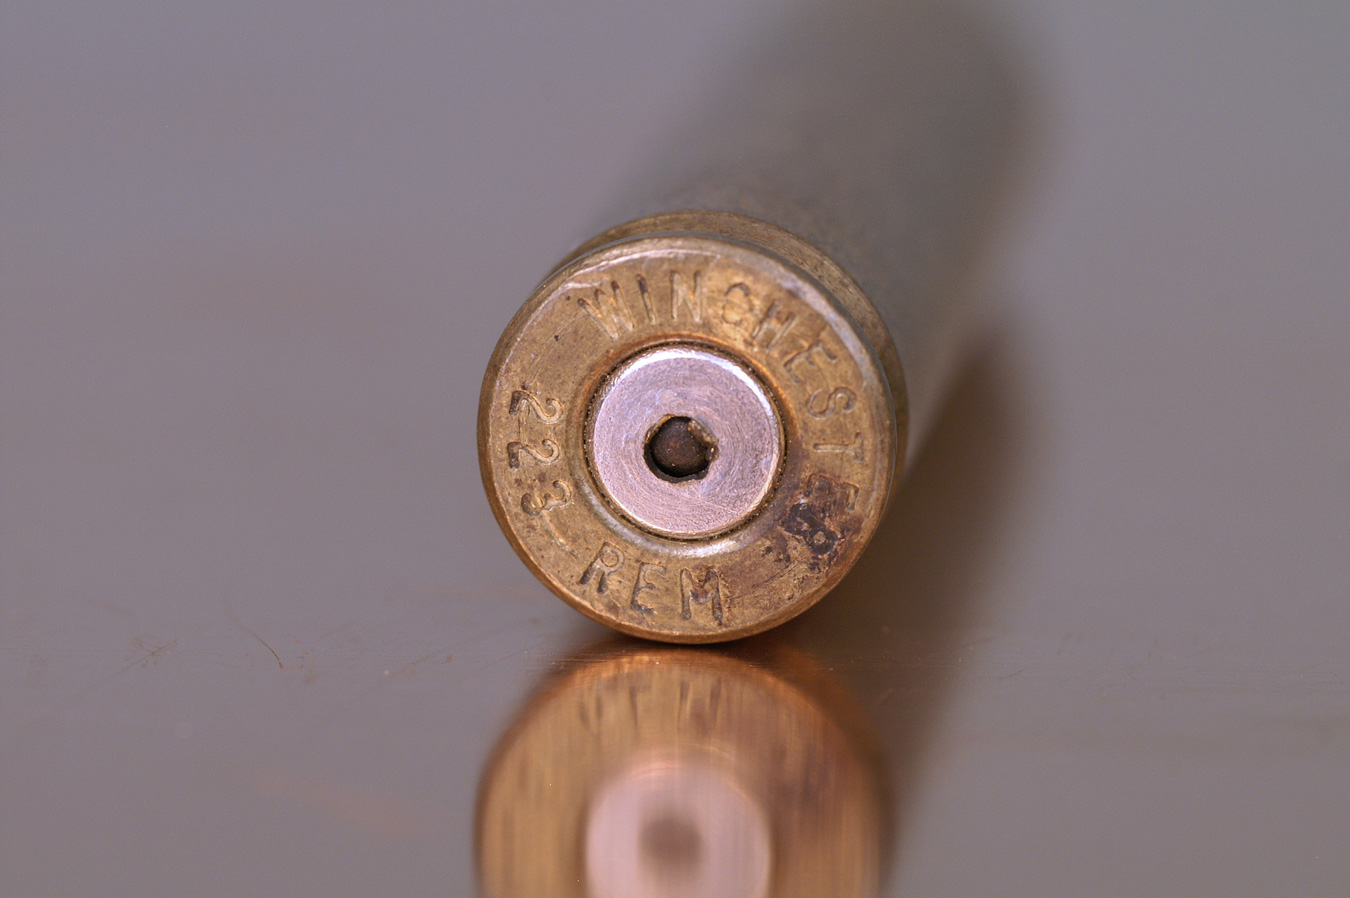 .223/5.56 cartridge with a primer that has a hole punched in it by the firing pin